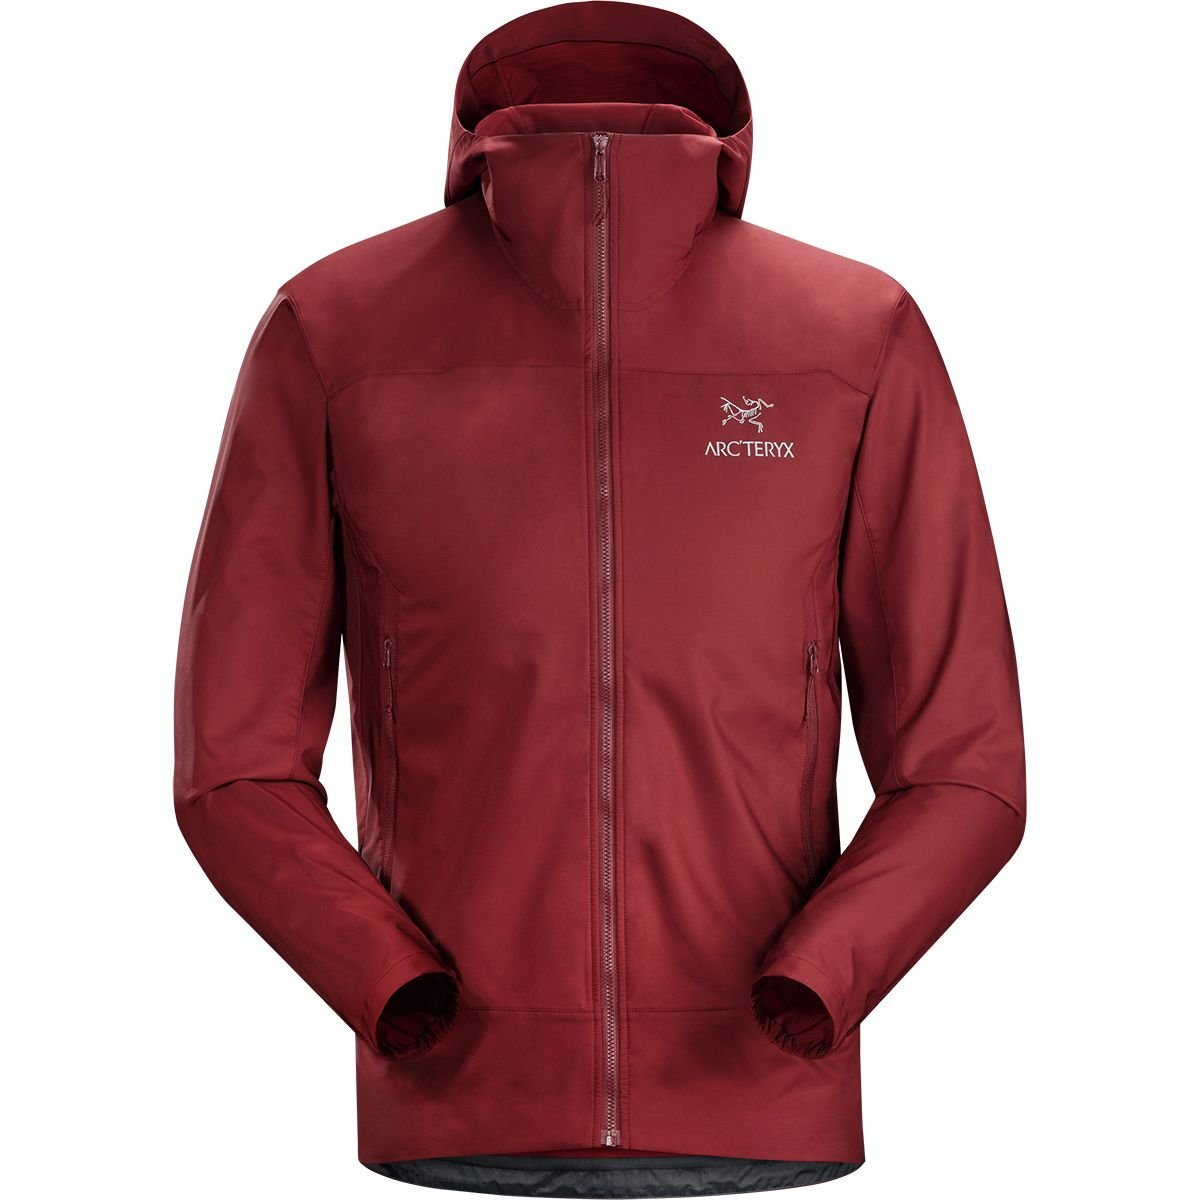 Arc ' teryx Tenquille Softshell Hooded Jacket – Men 's B078SKBSZ5 XX-Large|Pompeii Pompeii XX-Large